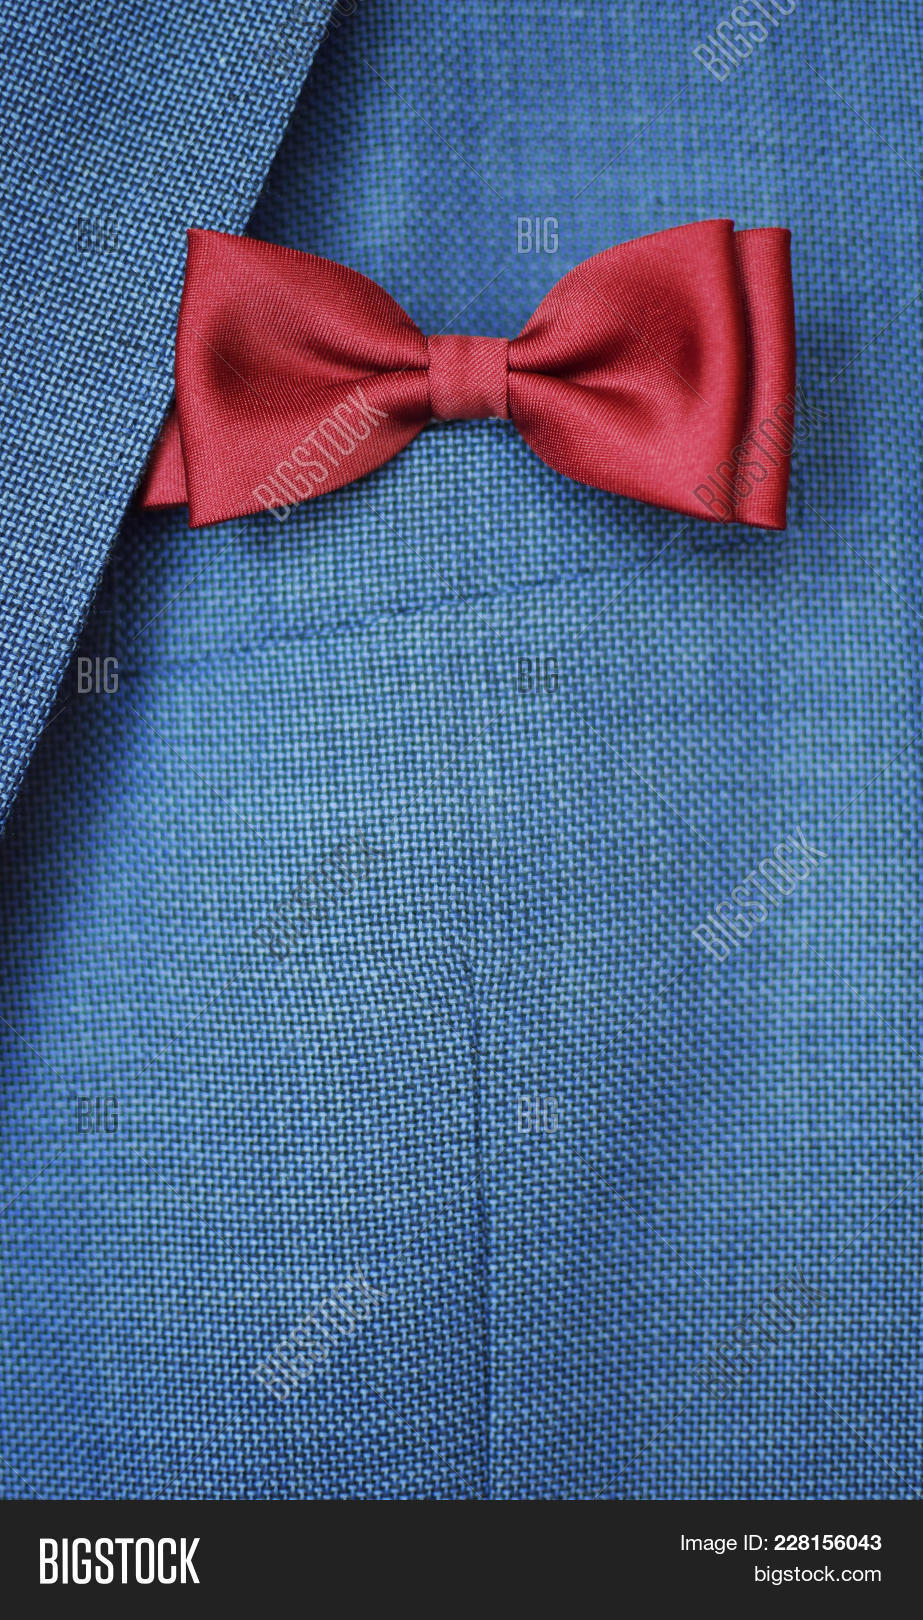 Red Bow Tie On Blue Image & Photo (Free Trial) | Bigstock